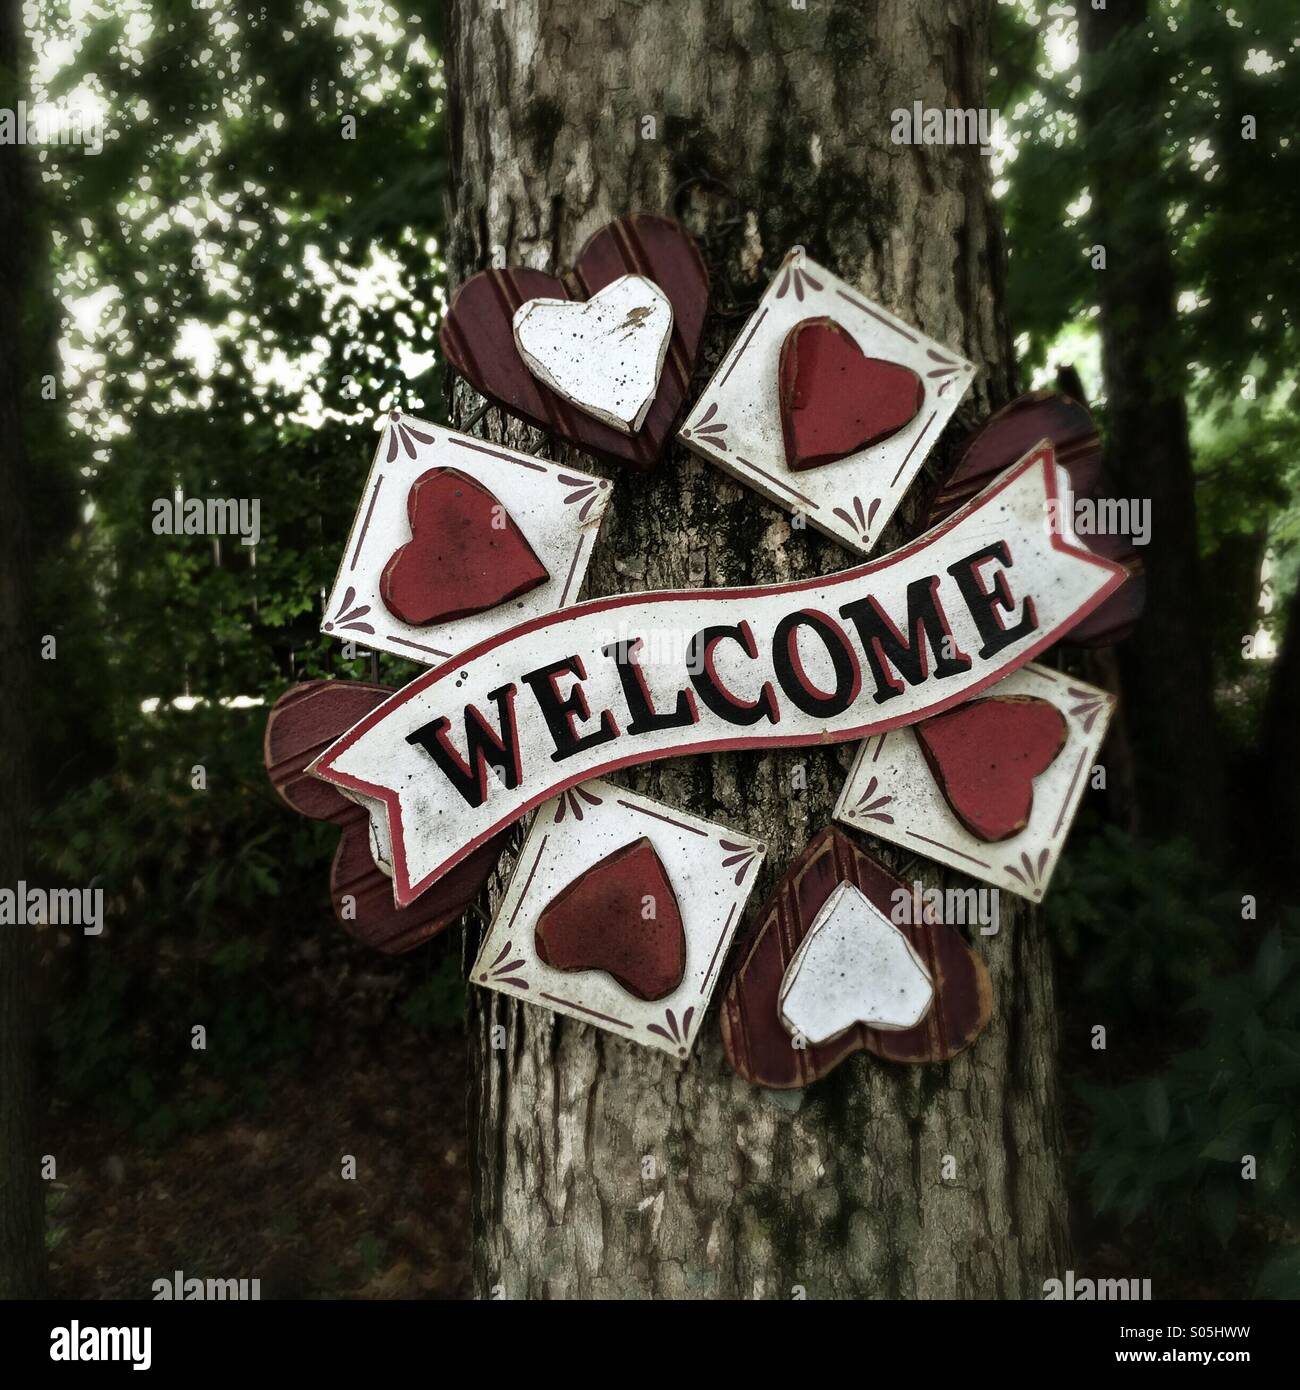 Welcome sign on a tree. - Stock Image